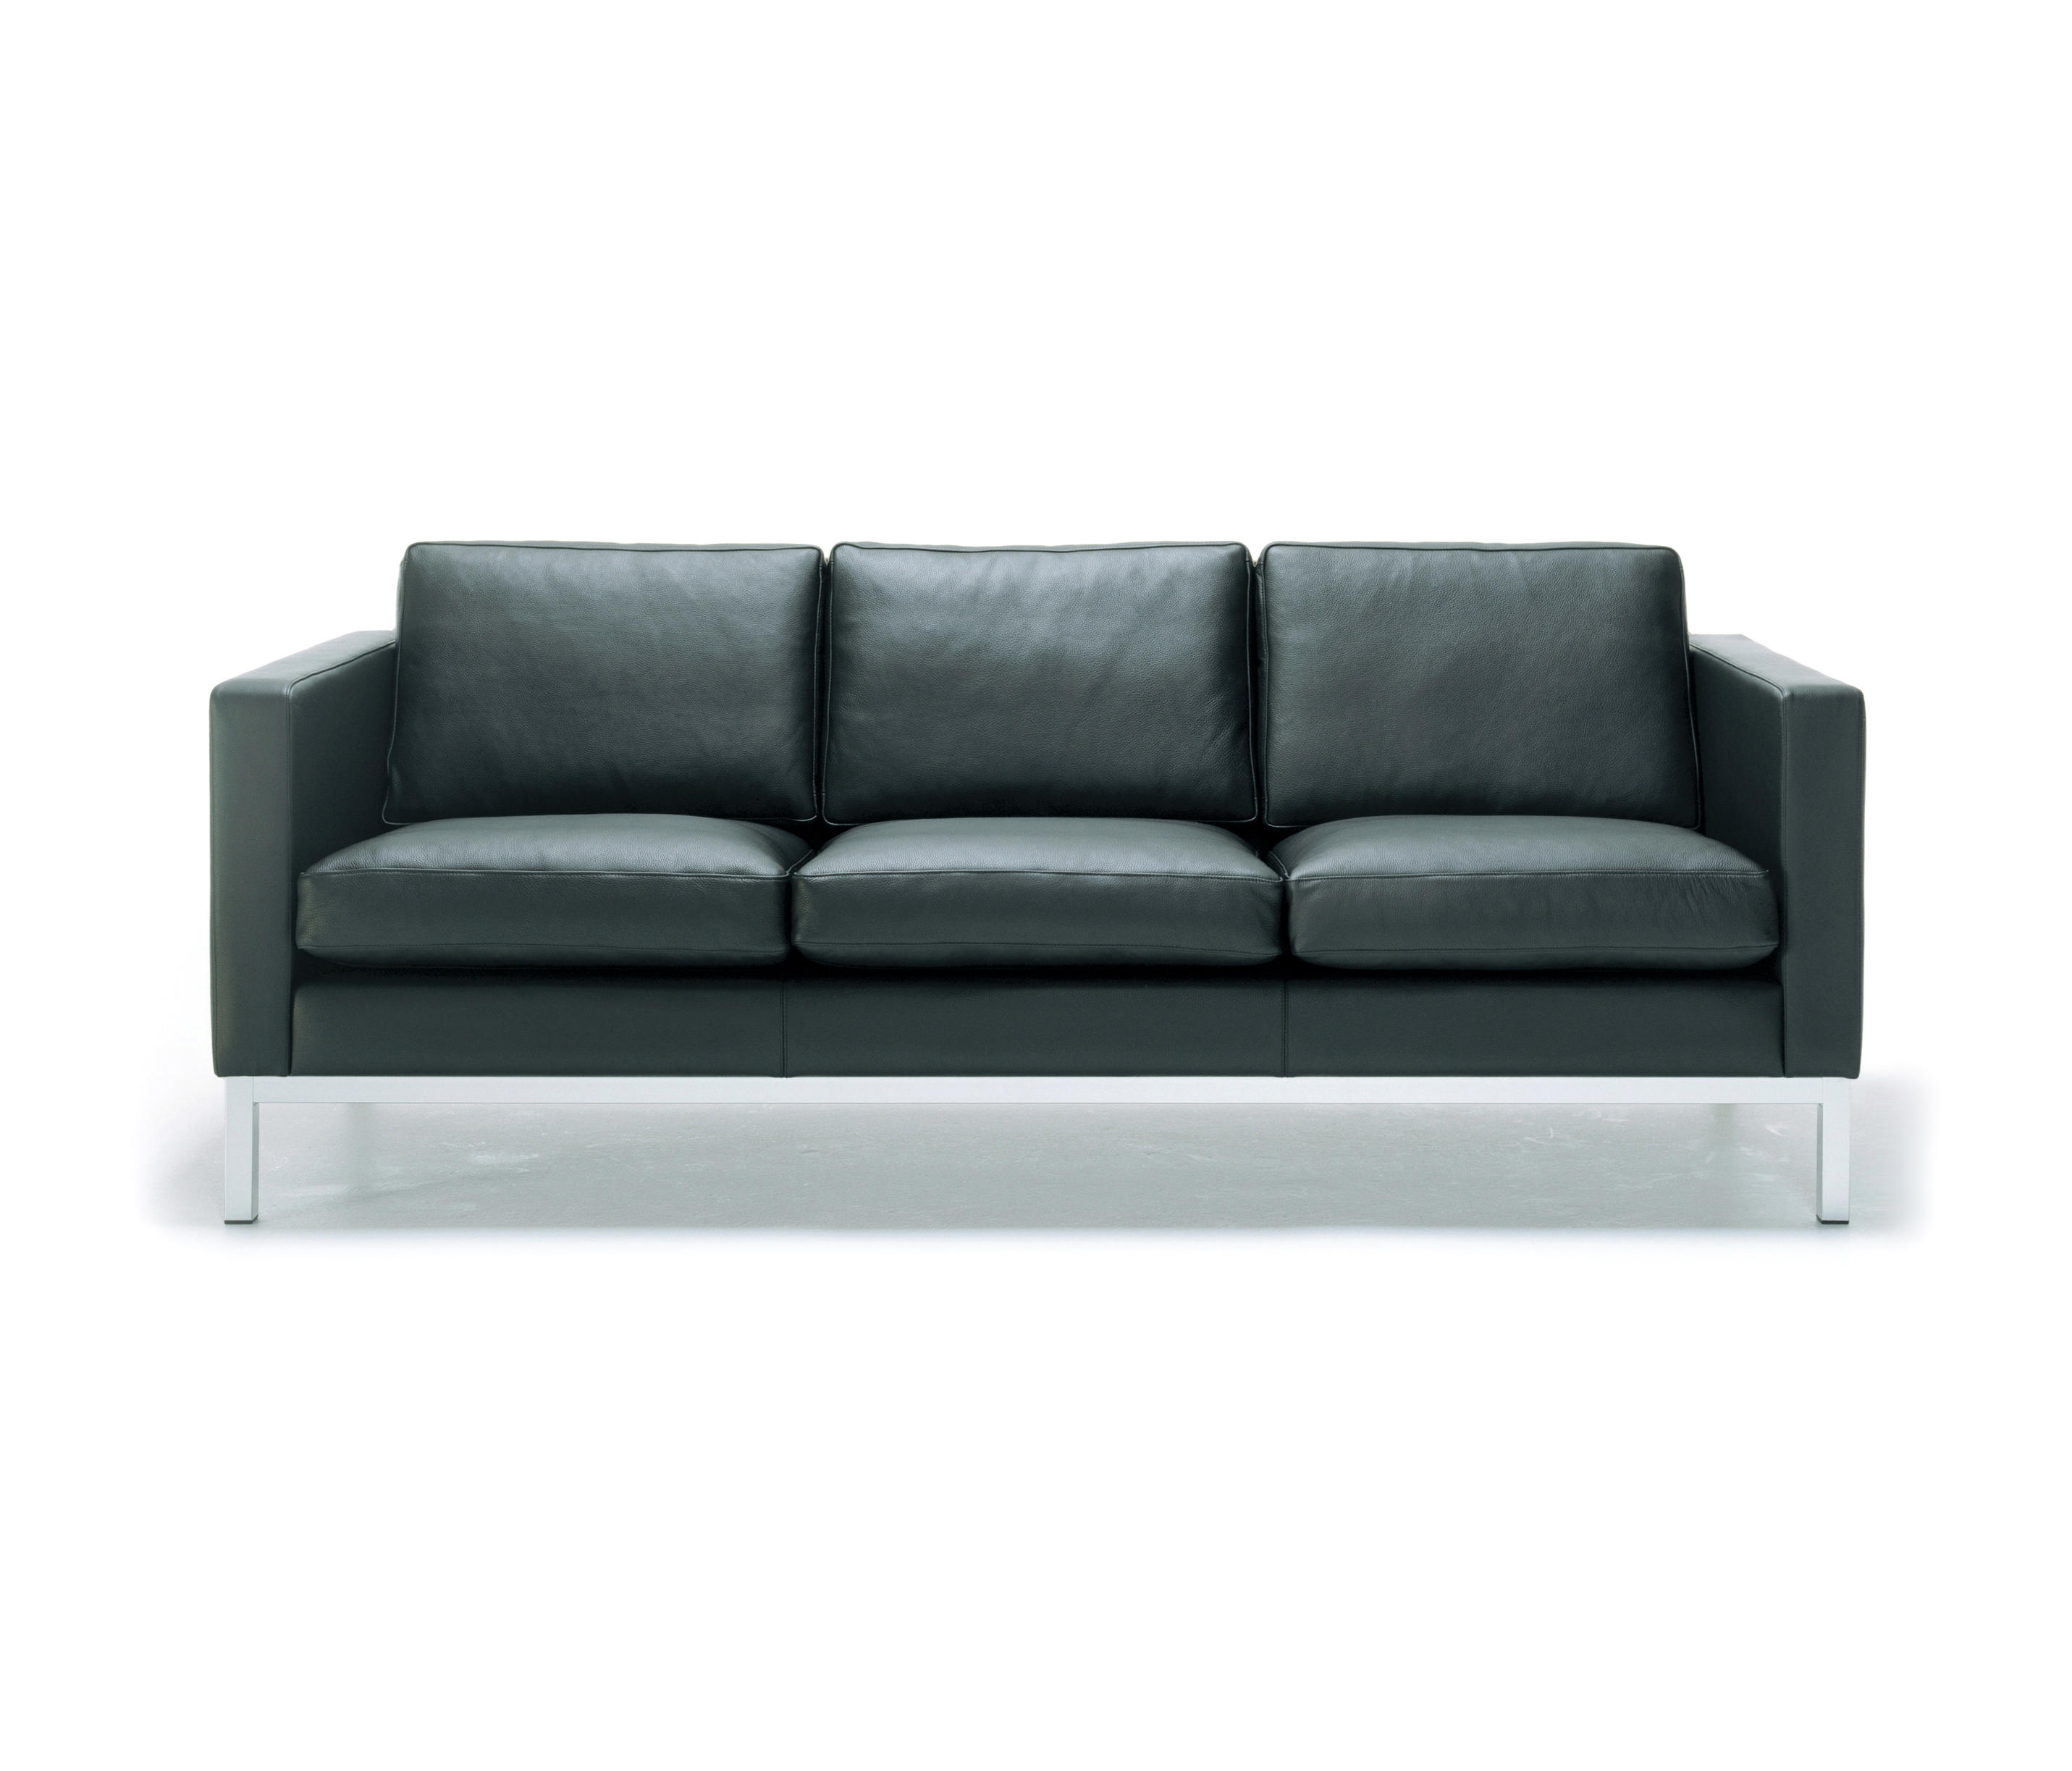 Alle nye HJM SOFLEX 150 SOFA - Sofas from Stouby | Architonic QW-66